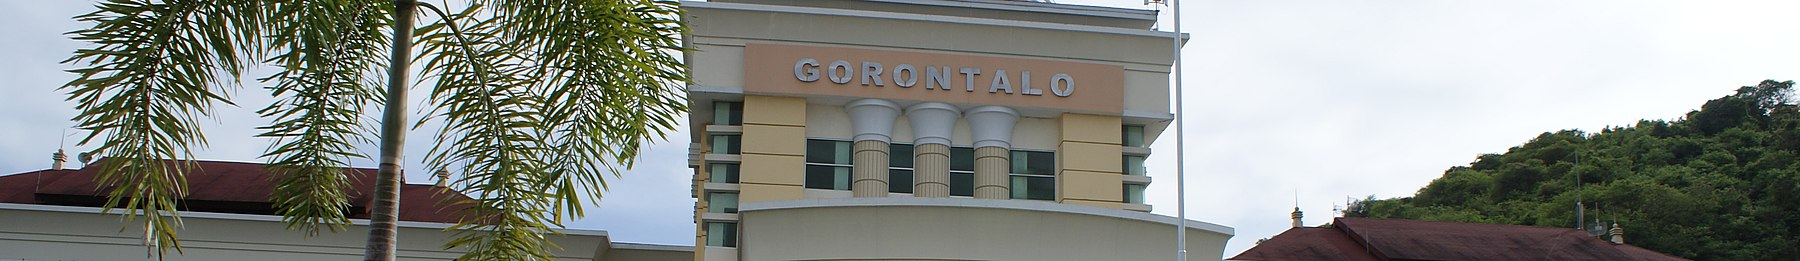 Governor Office of Gorontalo Province (cropped).JPG